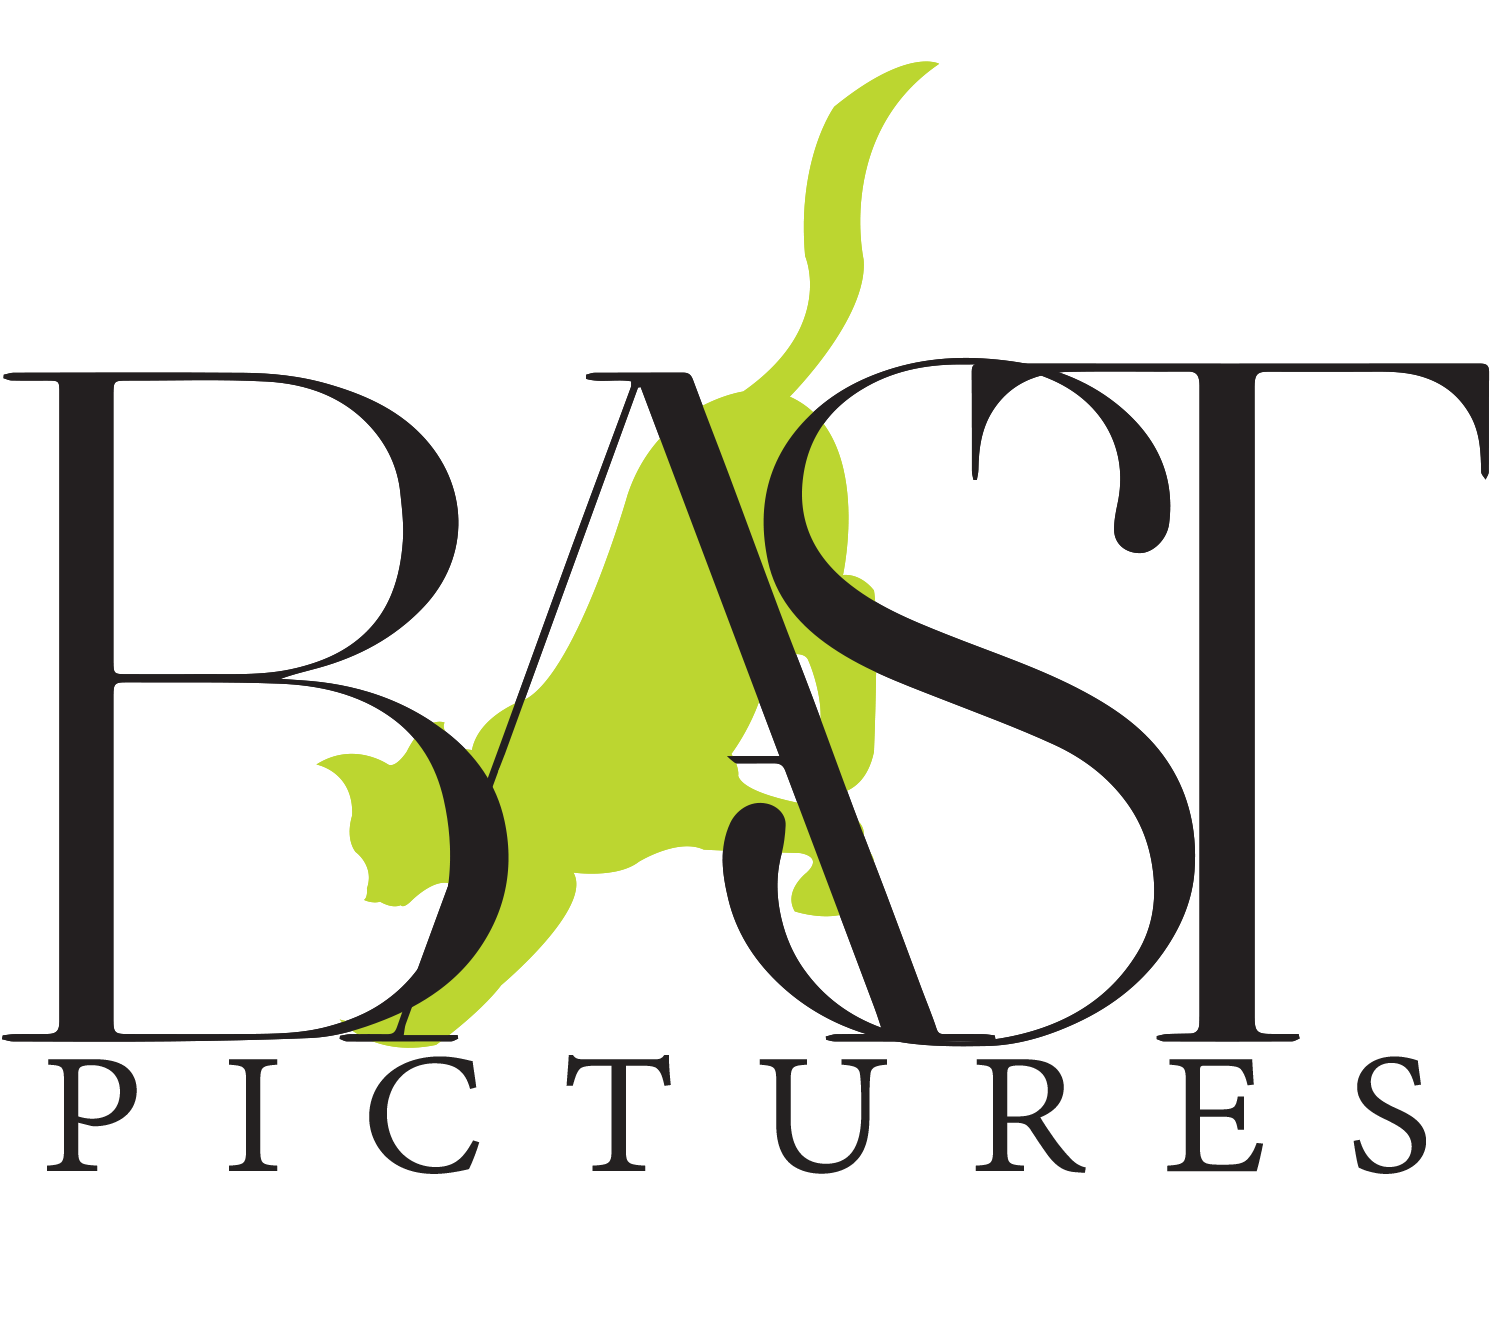 Bast Pictures